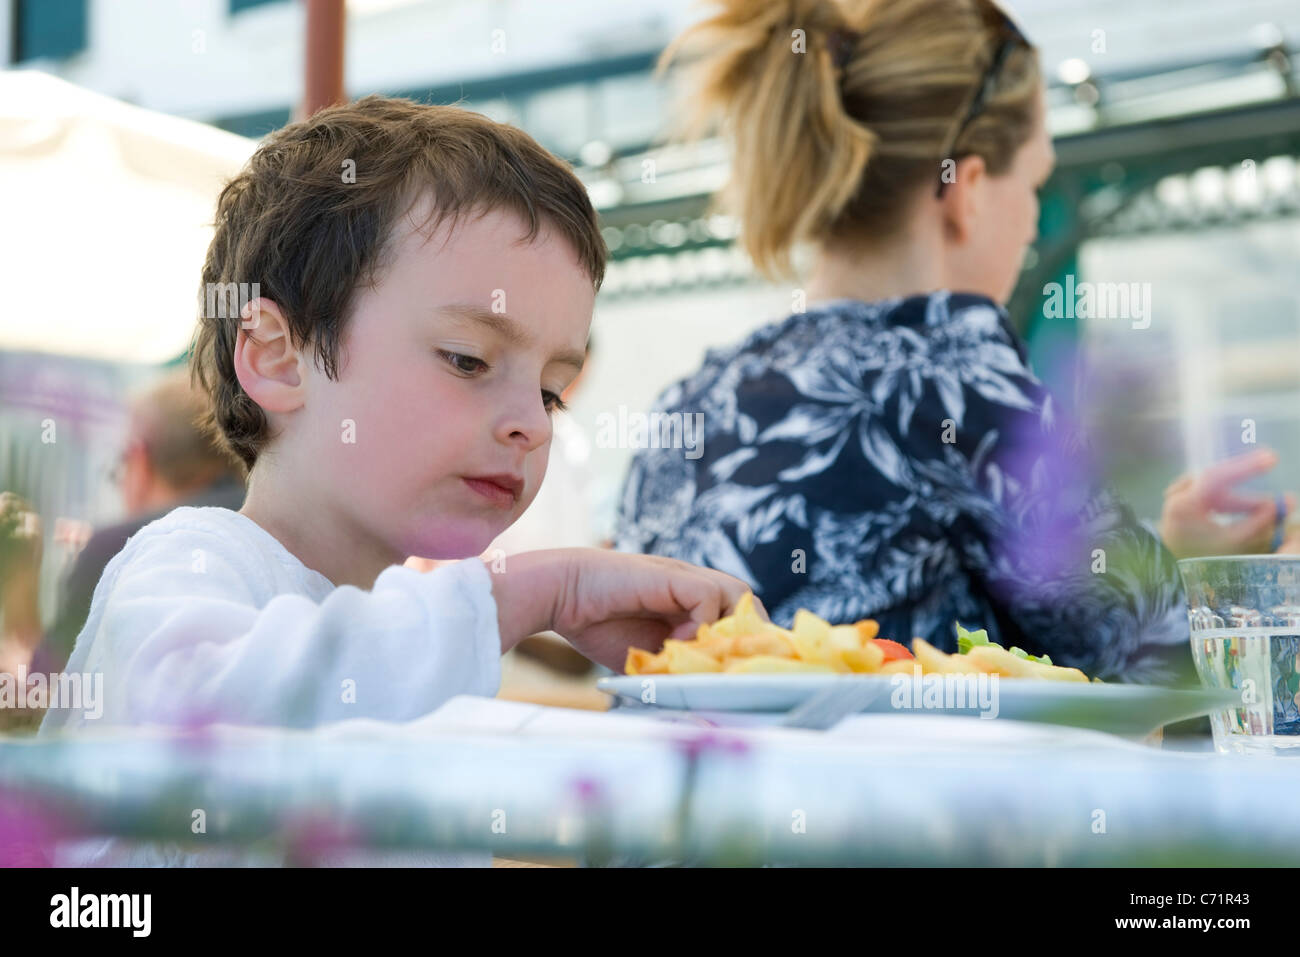 Boy eating in outdoor cafe - Stock Image